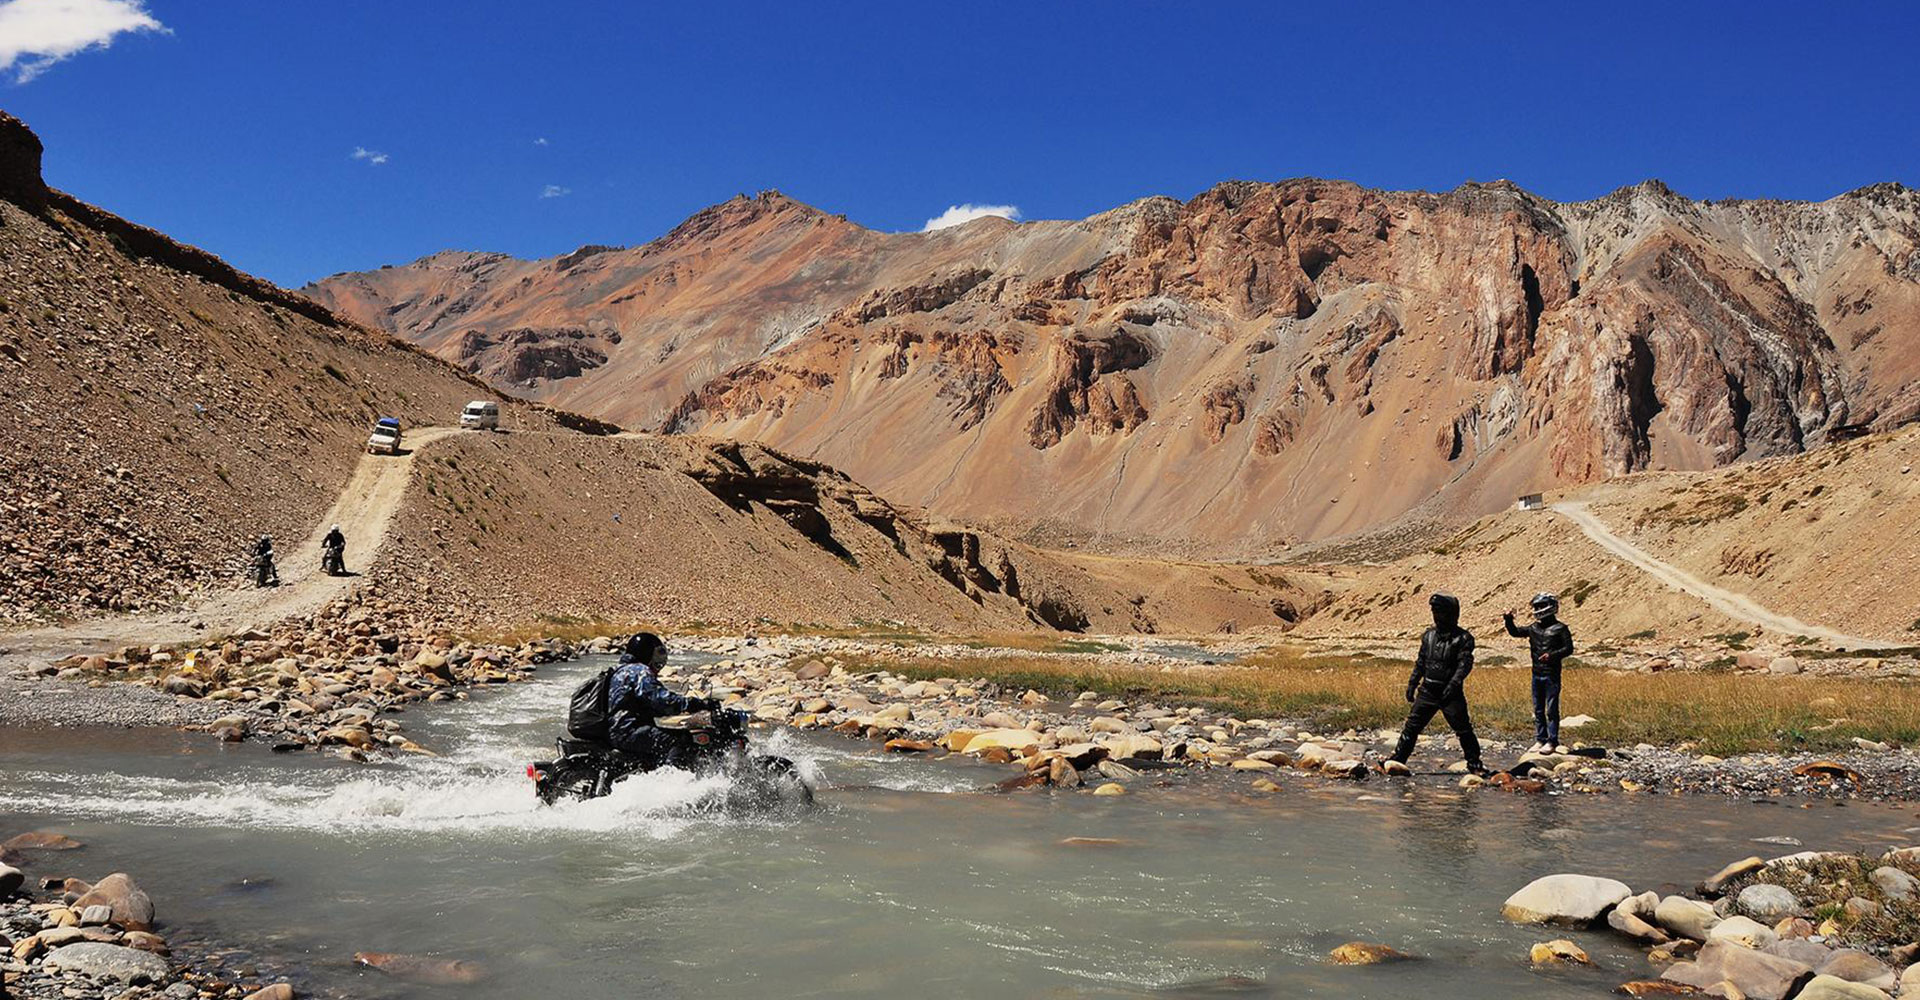 One of the toughest river crossings of the trip, but it's also a lot of fun.